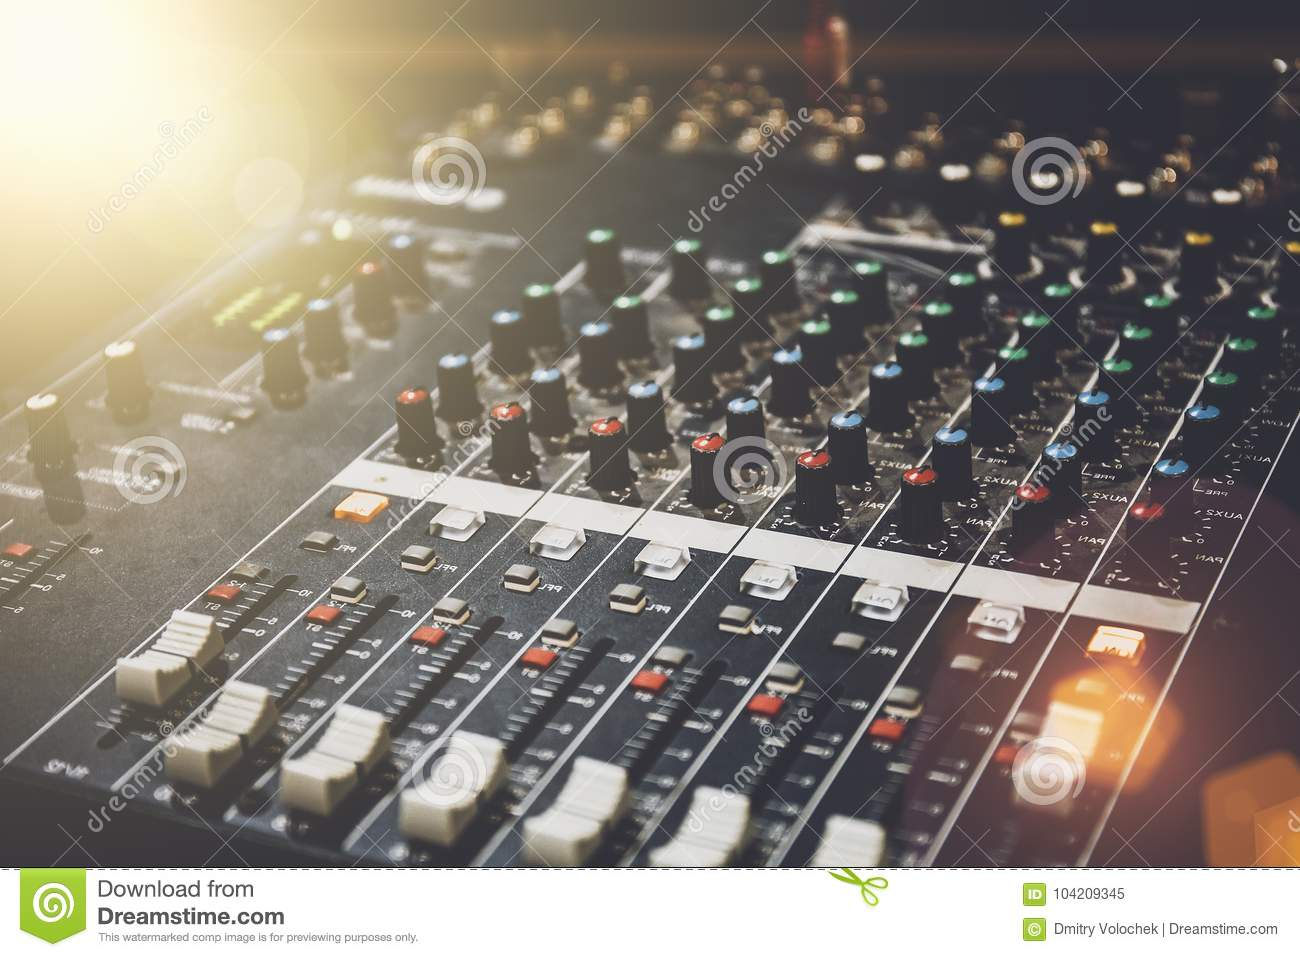 professional sound mixer in studio for music and sound recording equipment stock image image. Black Bedroom Furniture Sets. Home Design Ideas